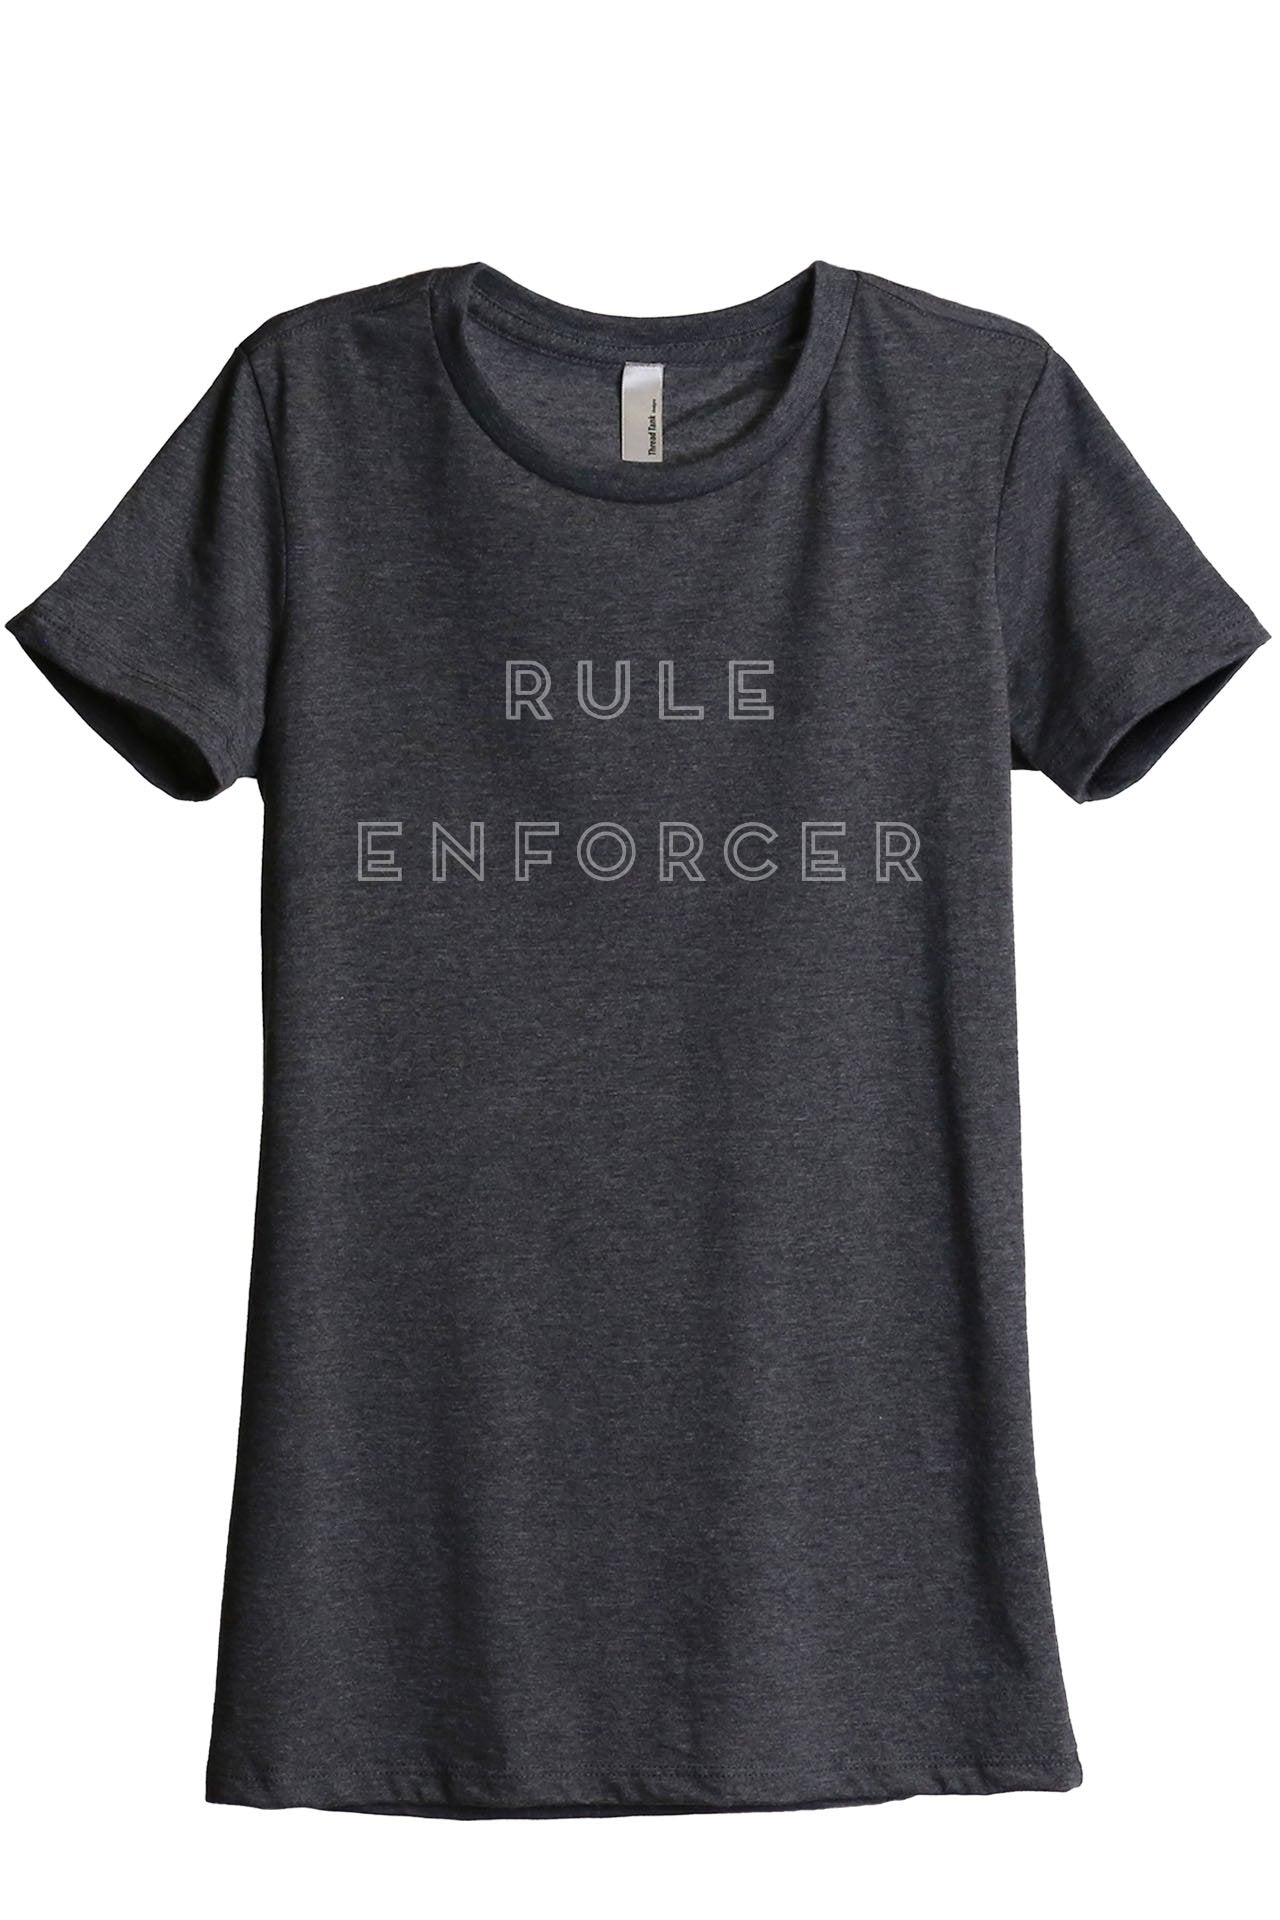 Rule Enforcer Women's Relaxed Crewneck T-Shirt Top Tee Charcoal Grey